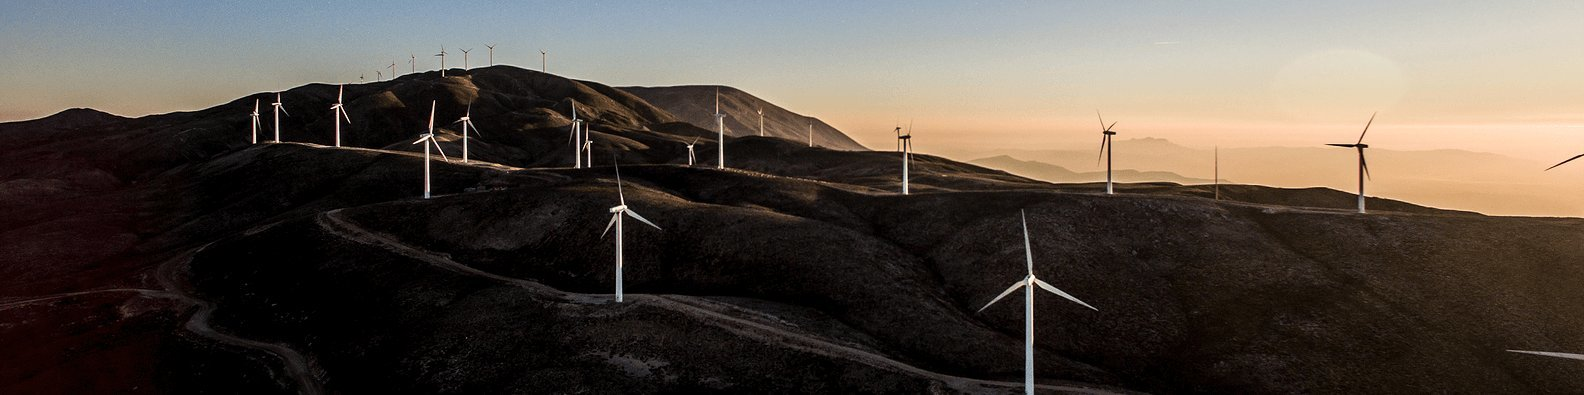 Fundraising - AFFORDABLE AND CLEAN ENERGY